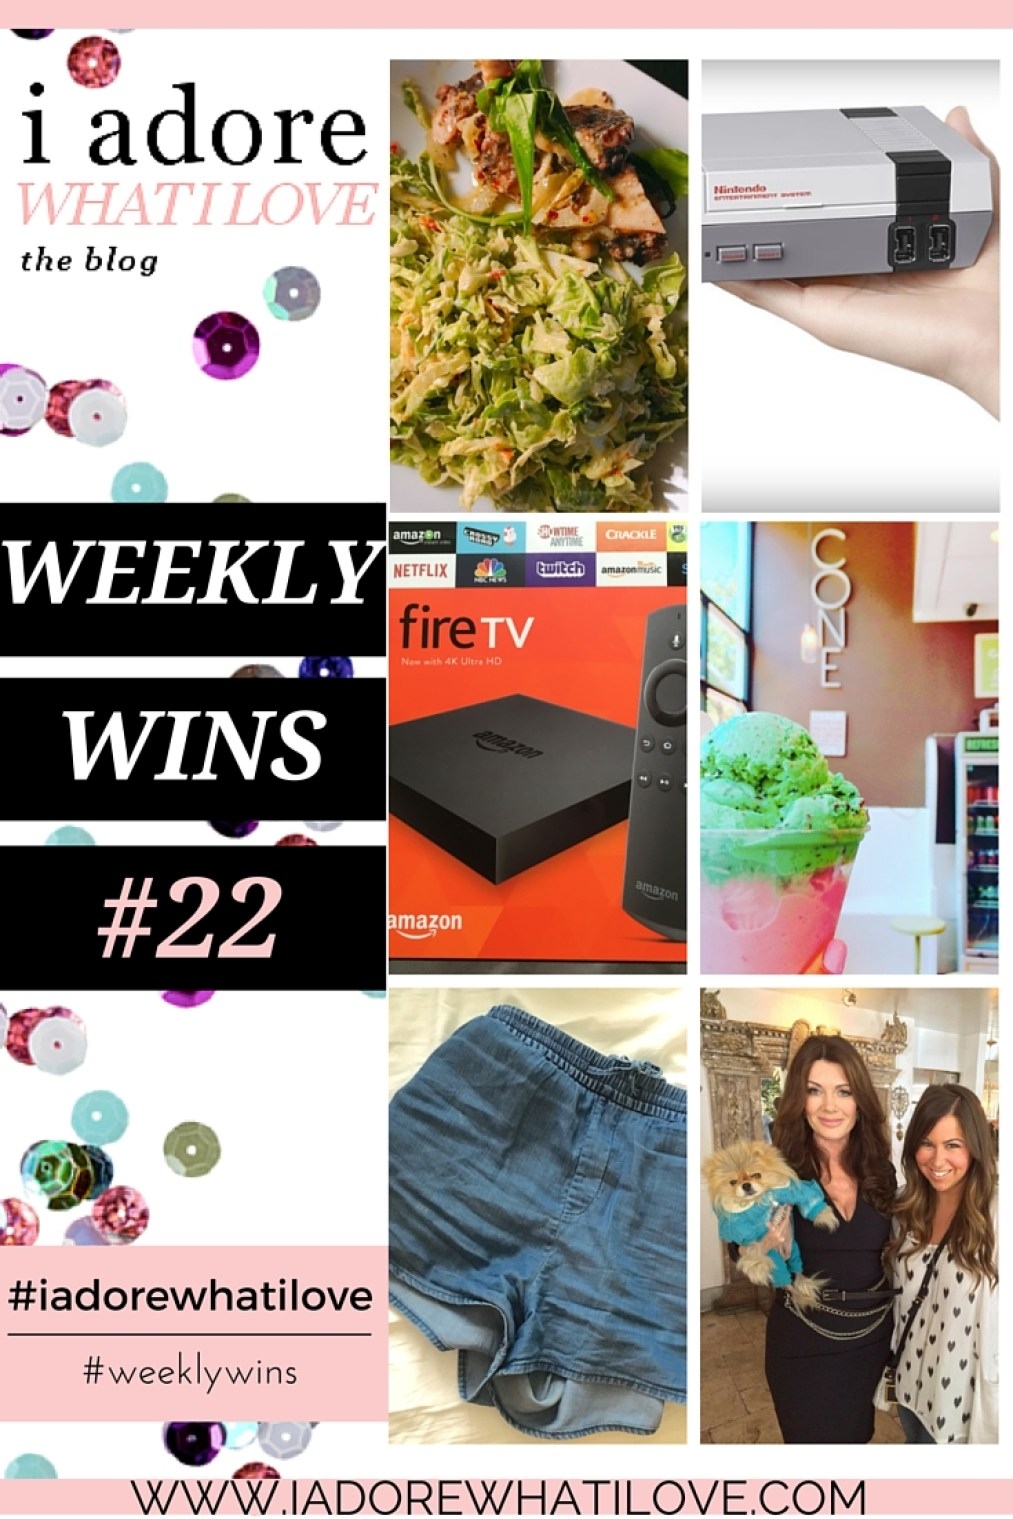 I Adore What I Love Blog // WEEKLY WINS #22 // www.iadorewhatilove.com #iadorewhatilove